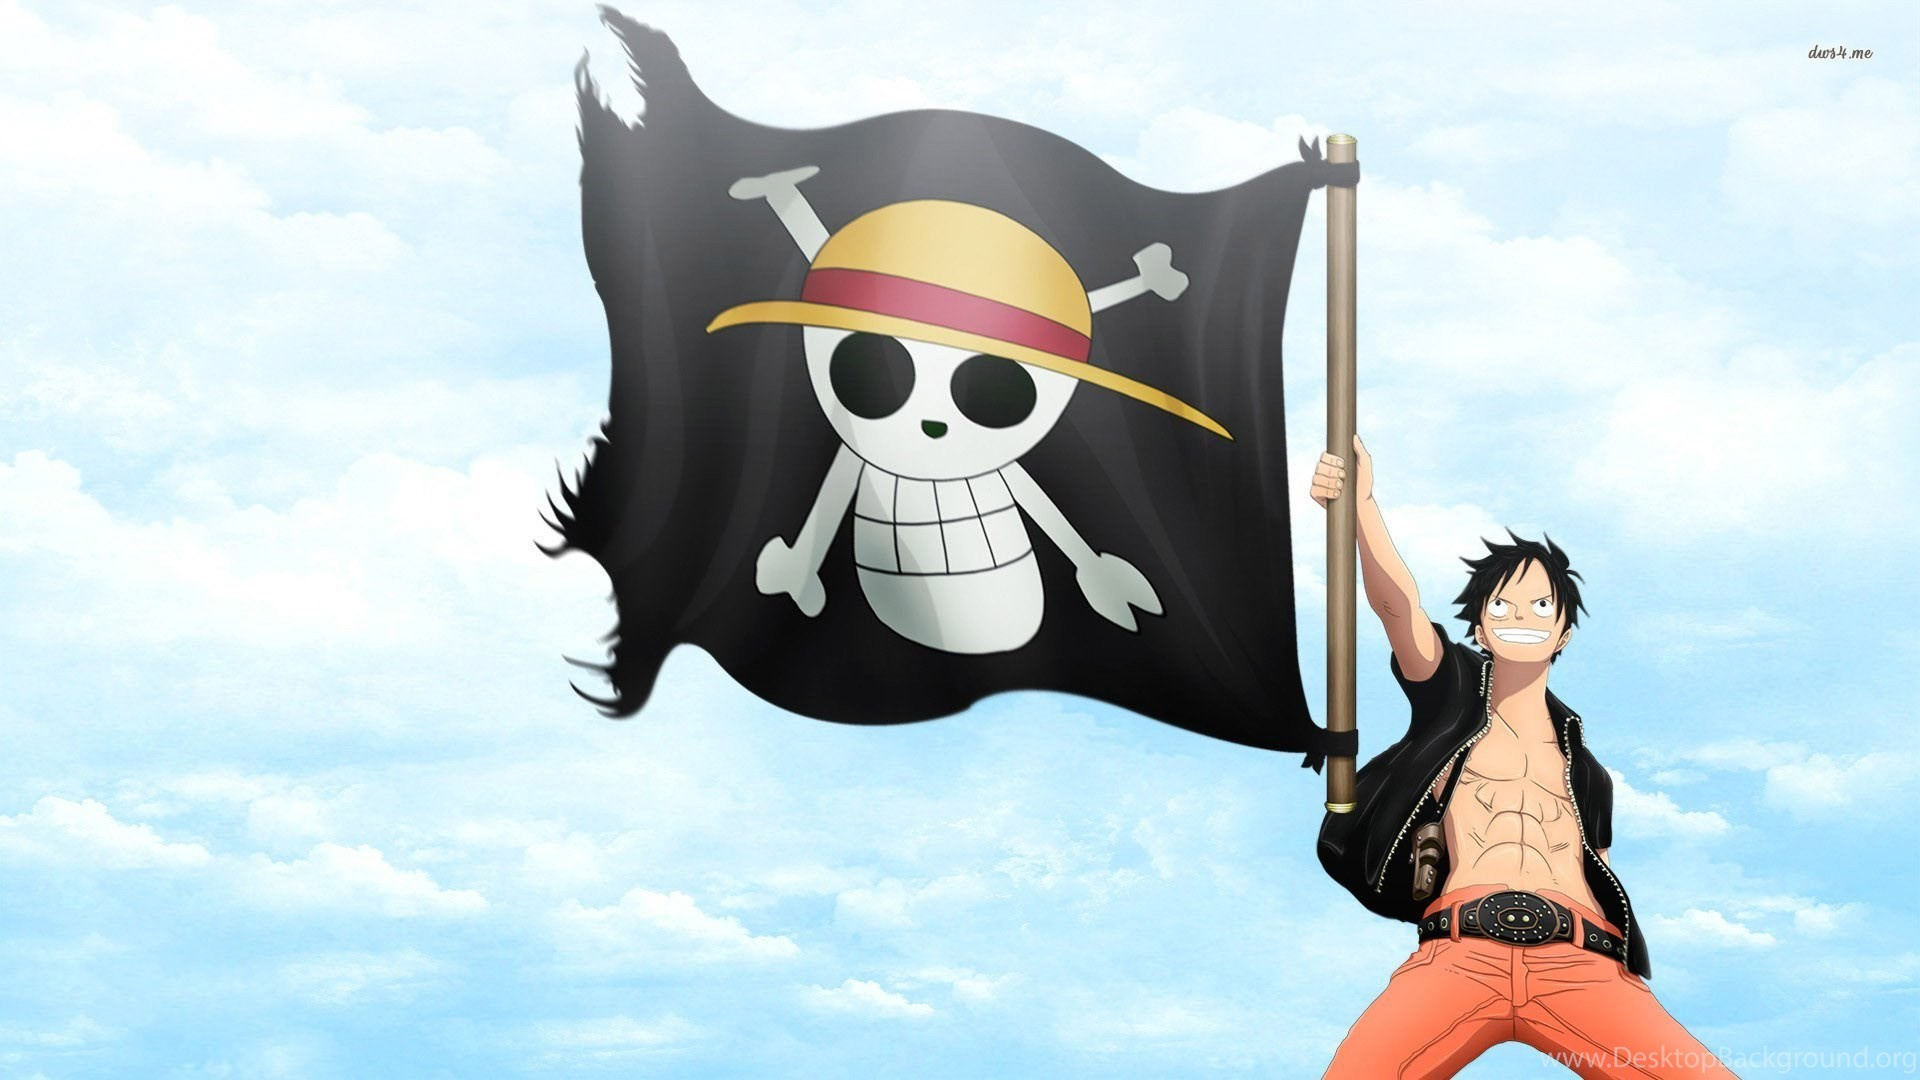 1920x1080 ... High Resolution Monkey D Luffy One Piece Wallpapers HD 6 Full Size